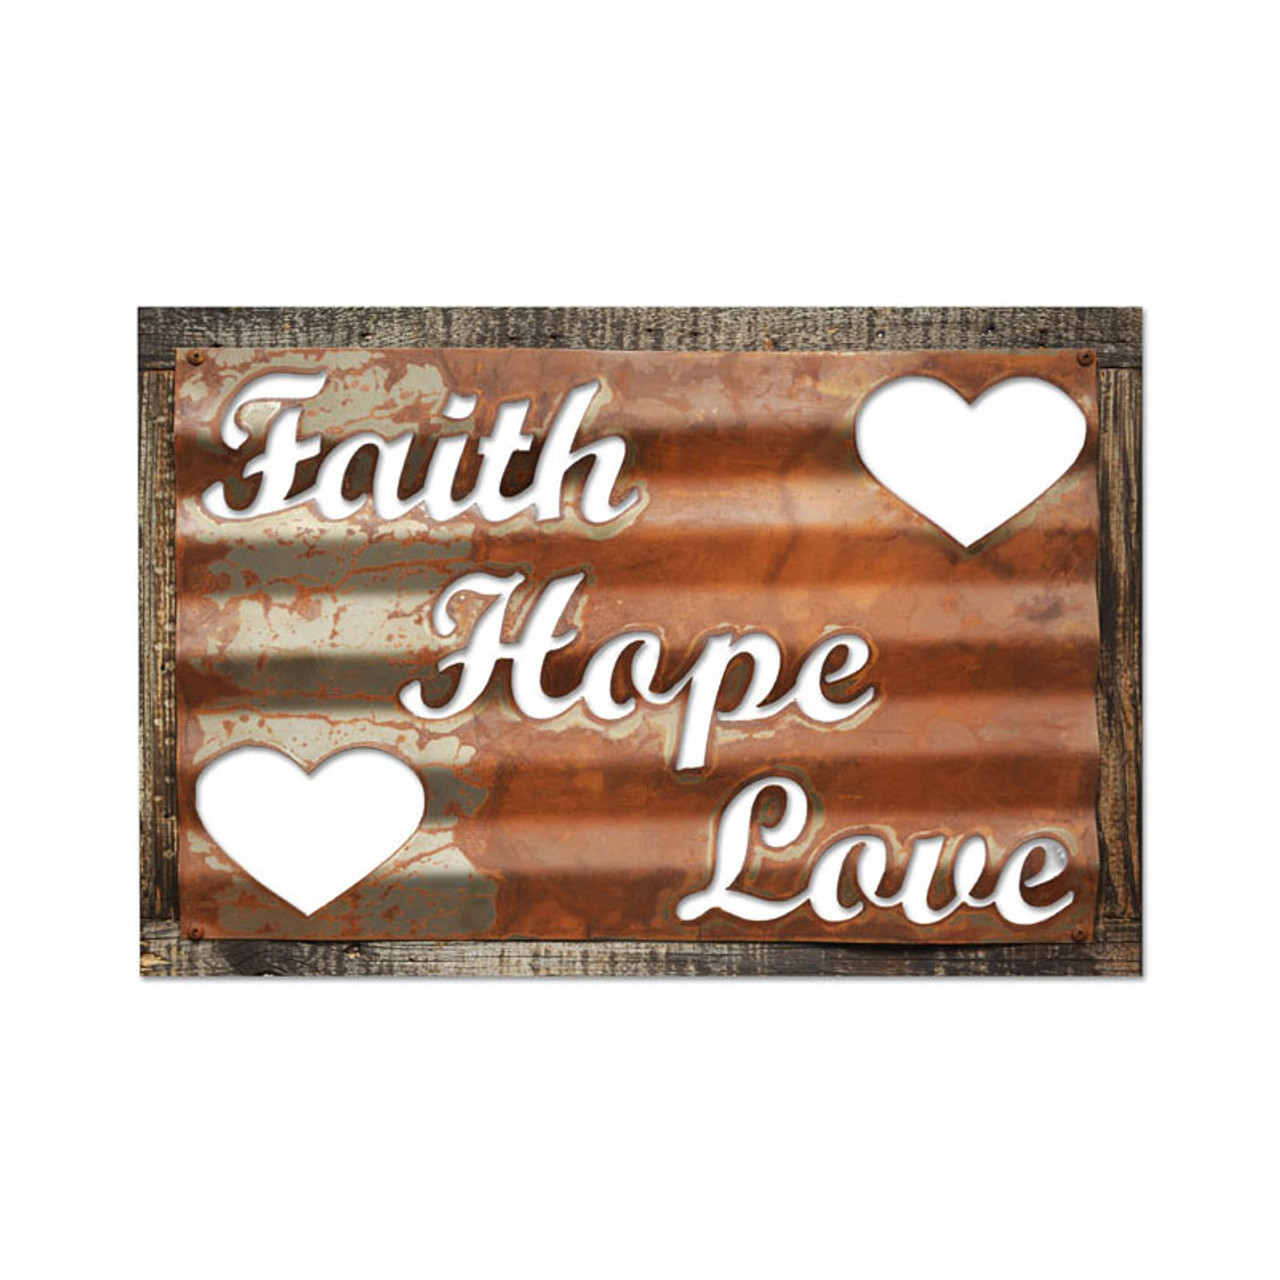 Vintage Faith Hope Love Corrugated Rustic Barn Wood Sign 19 x 26 Inches